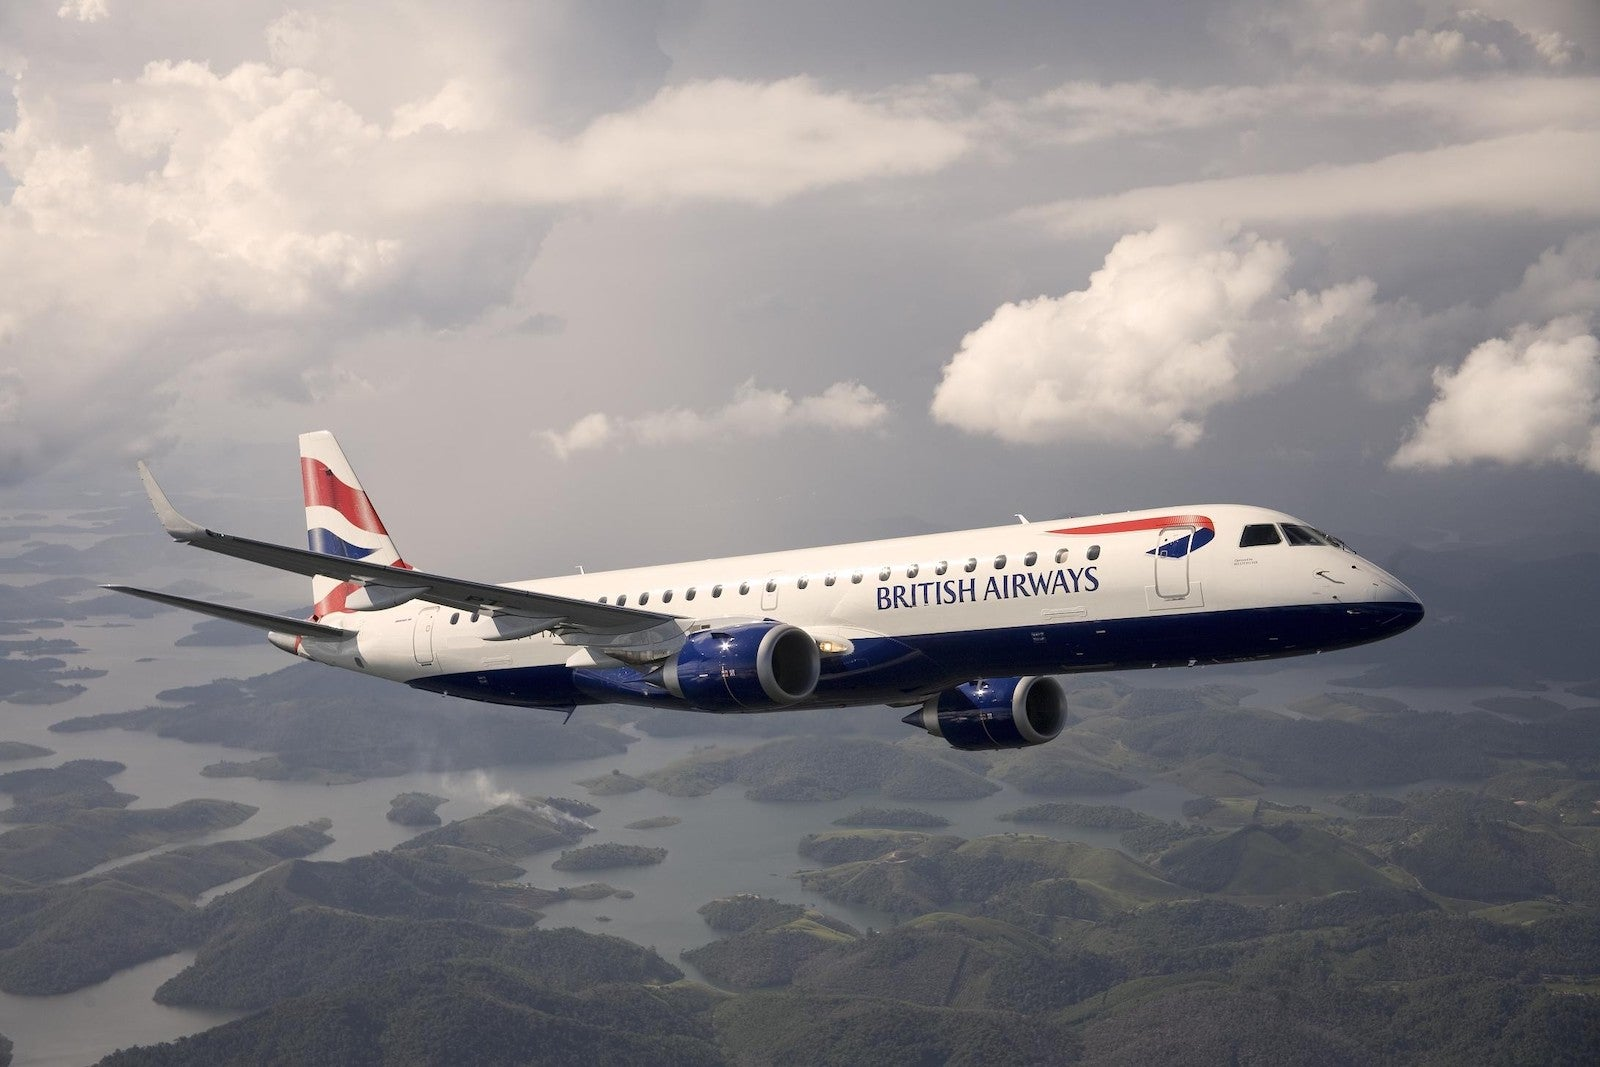 British Airways is extending and adding new UK service this winter - The Points Guy UK